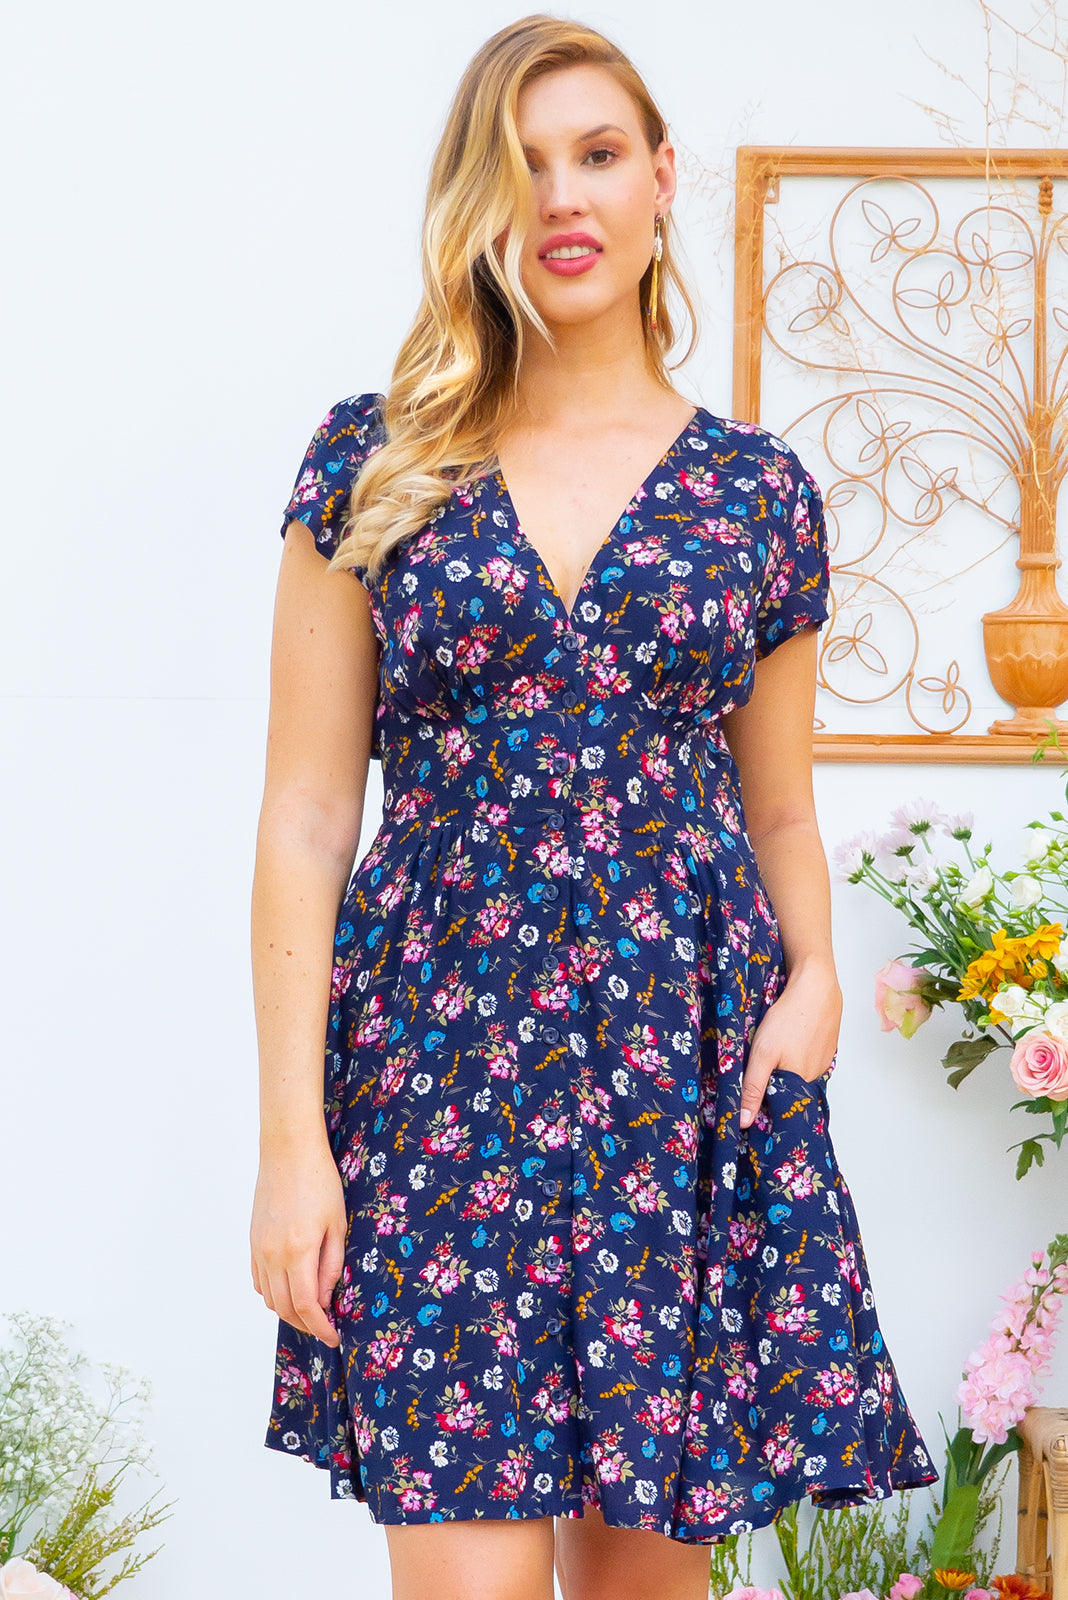 Peggy Nova Navy Mini dress features a vintage inspired fitted basque waist and elasticated waist with a cap sleeve, deep v neck and a functional button front the fabric is a soft woven rayon in a bright navy and floral print